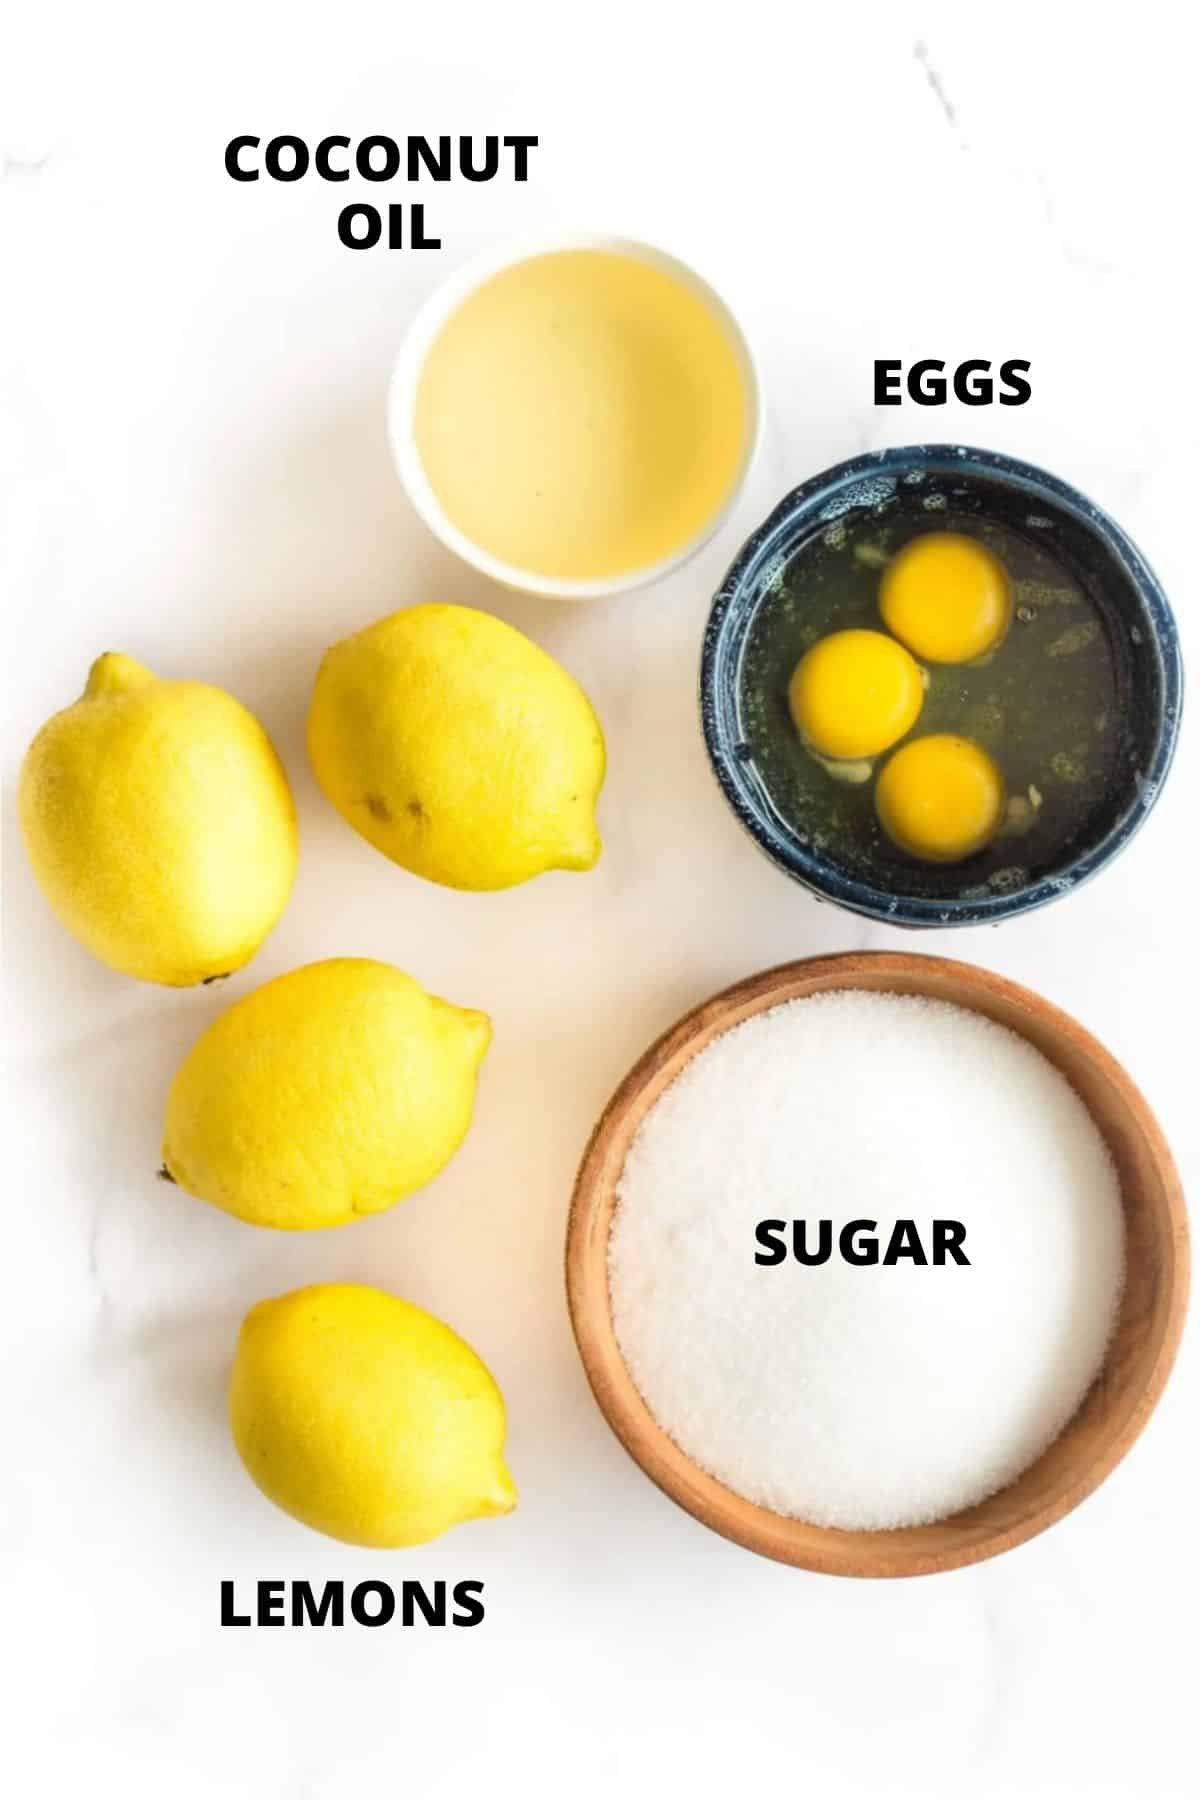 Ingredients for lemon curd on a marble board (eggs, sugar, lemon, and coconut oil).